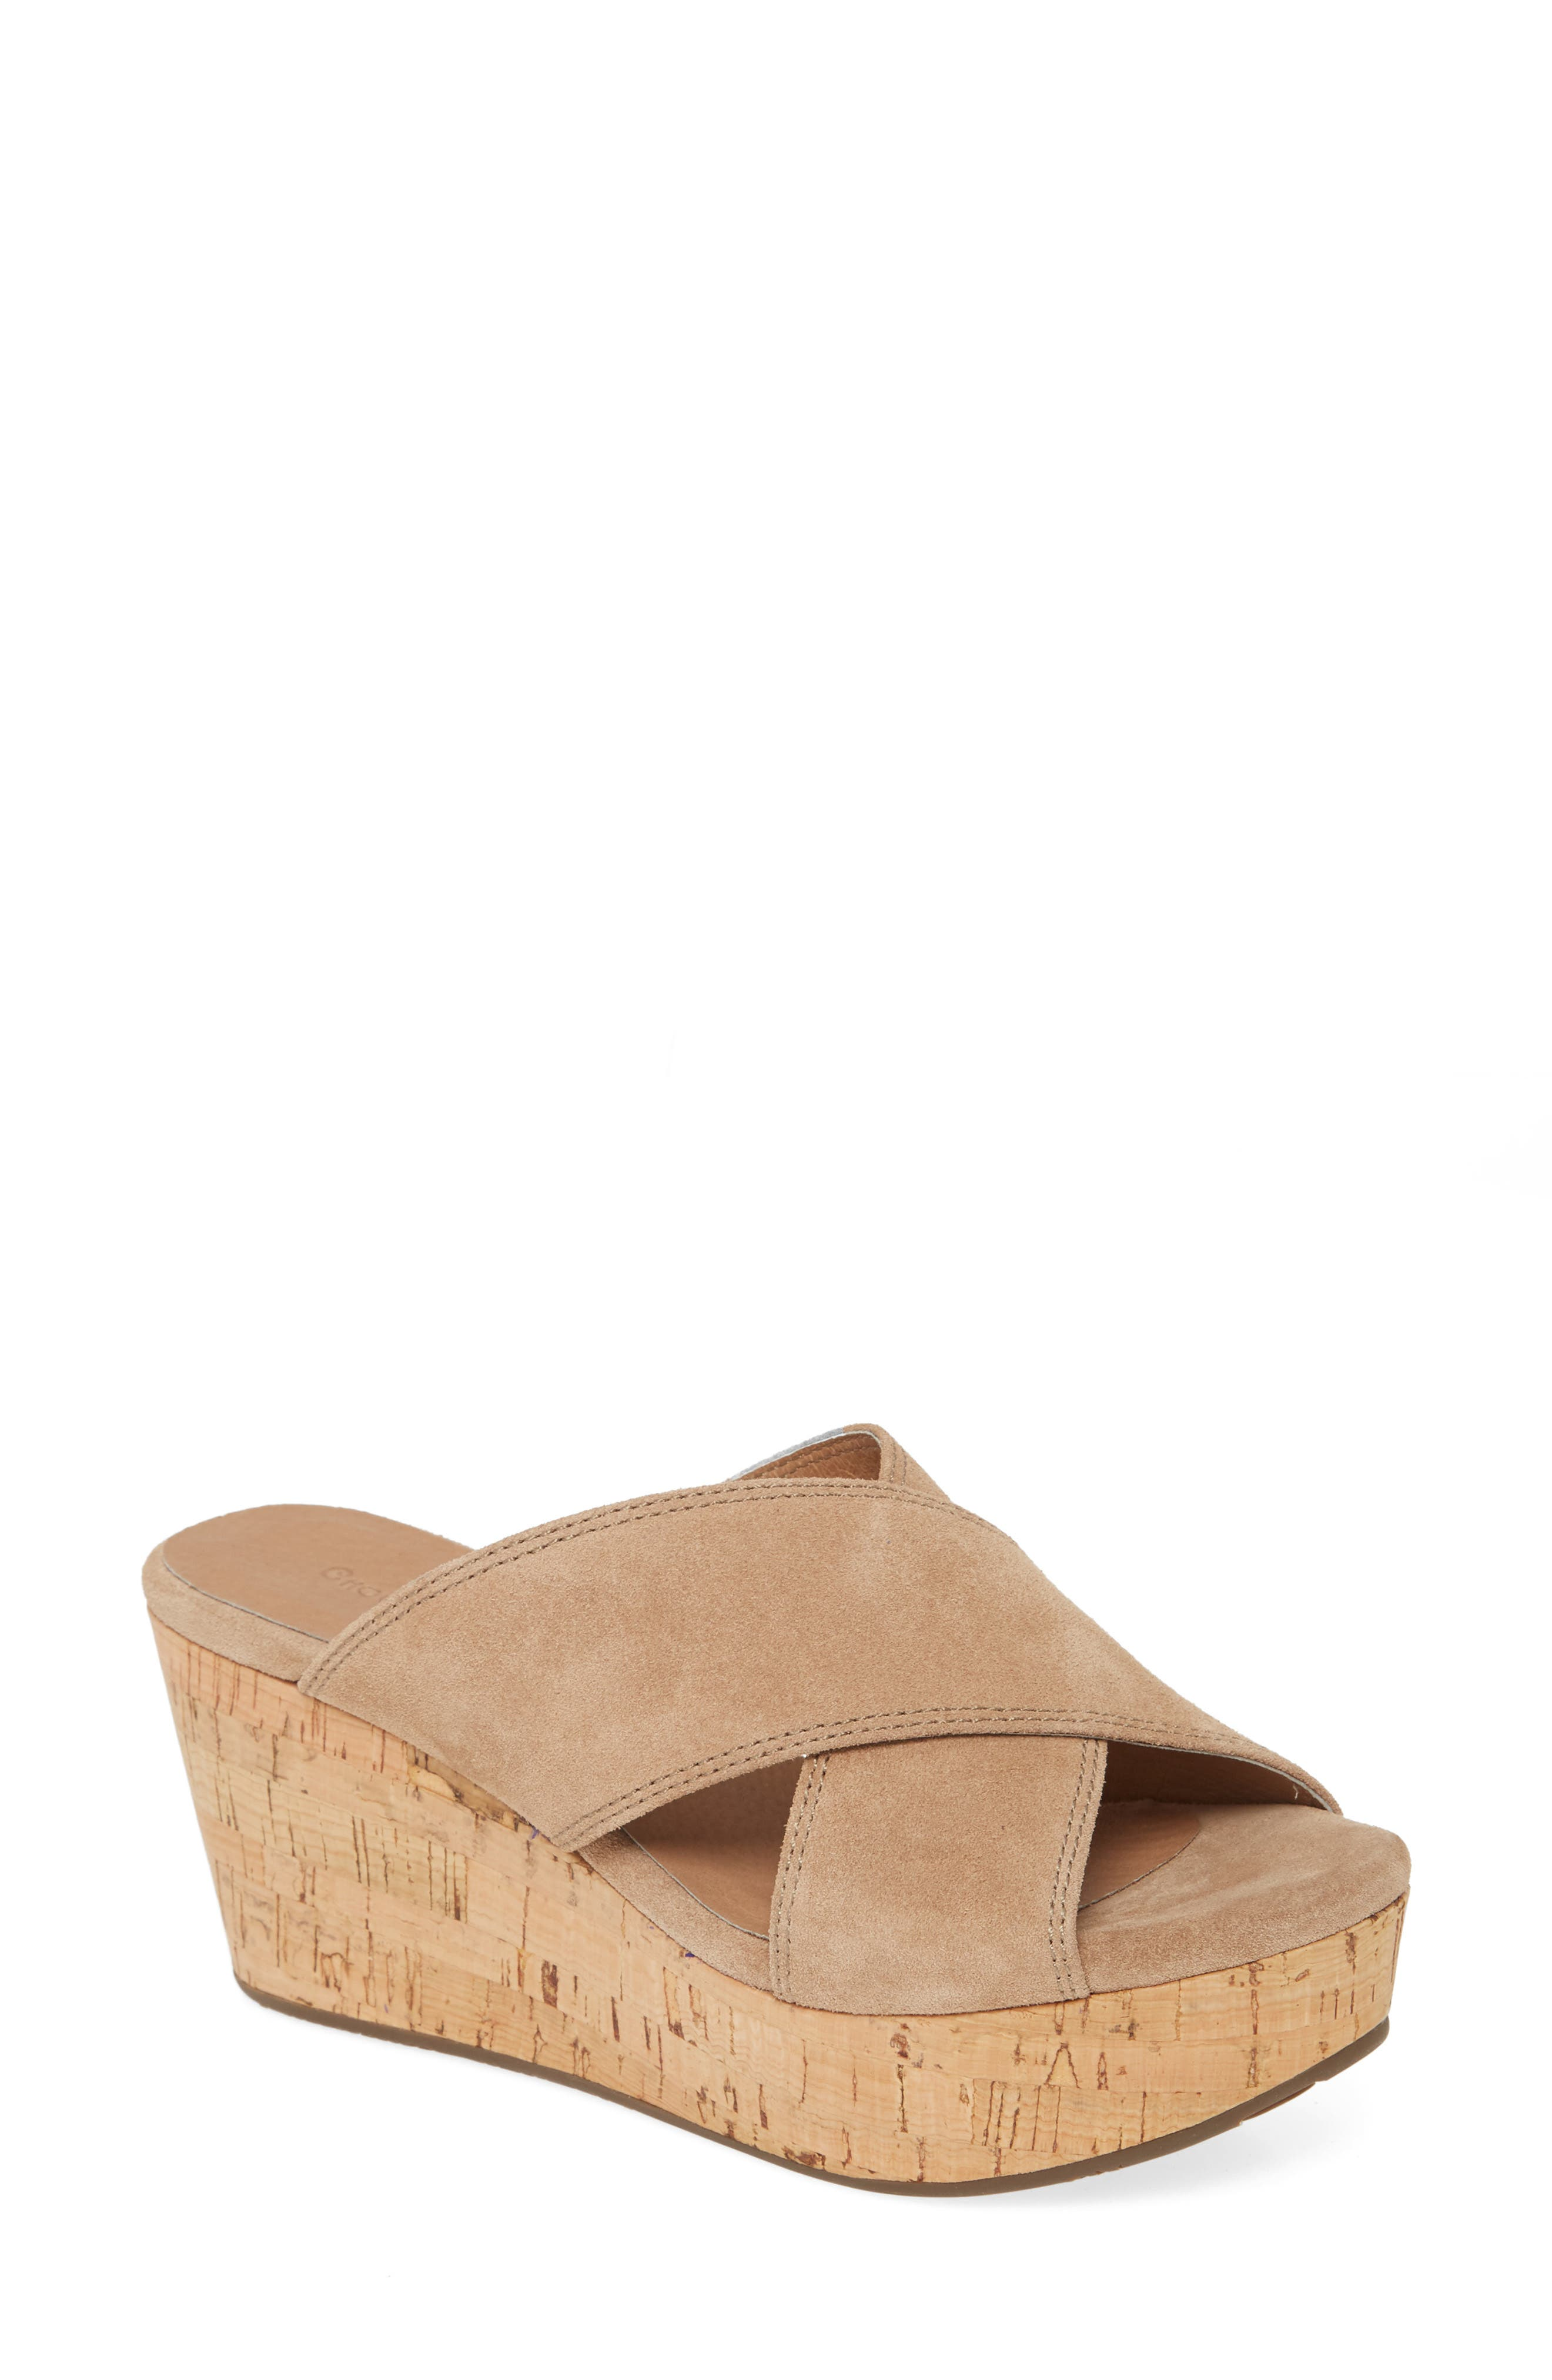 Chocolat Blu WENDY WEDGE SLIDE SANDAL